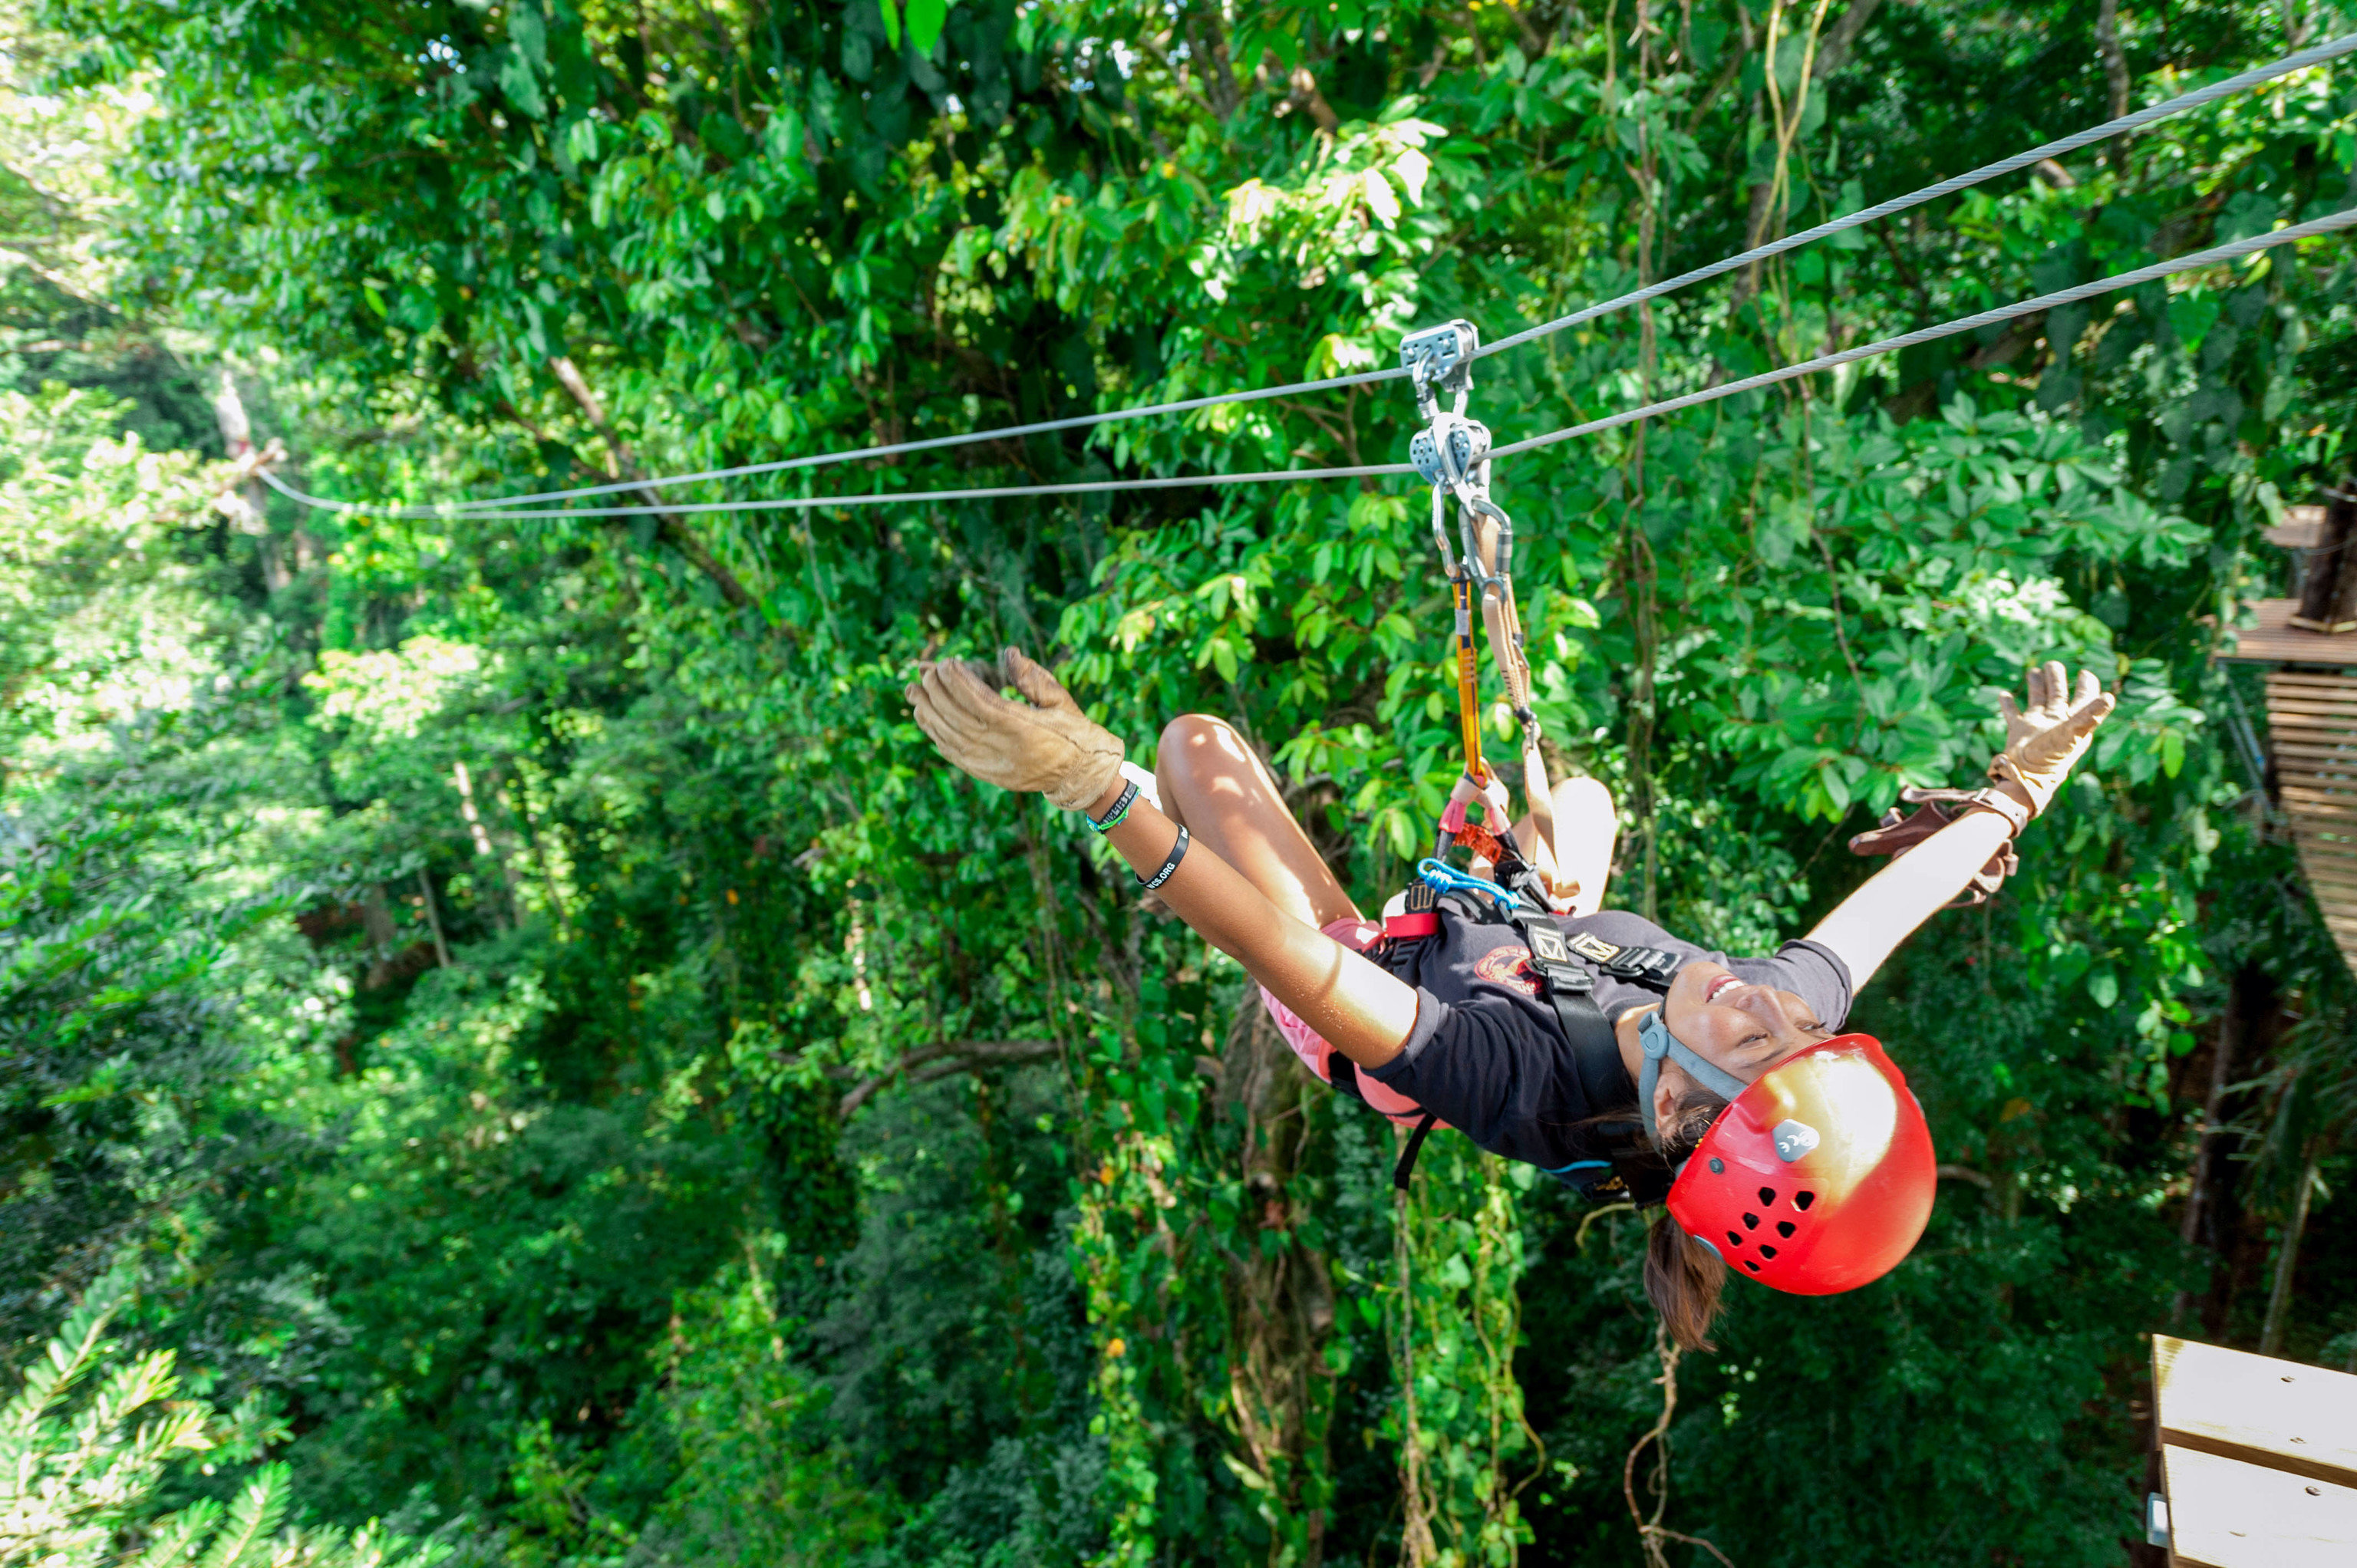 tree human action green jumping Jungle Forest Adventure rainforest bungee jumping extreme sport hand flower physical exercise abseiling